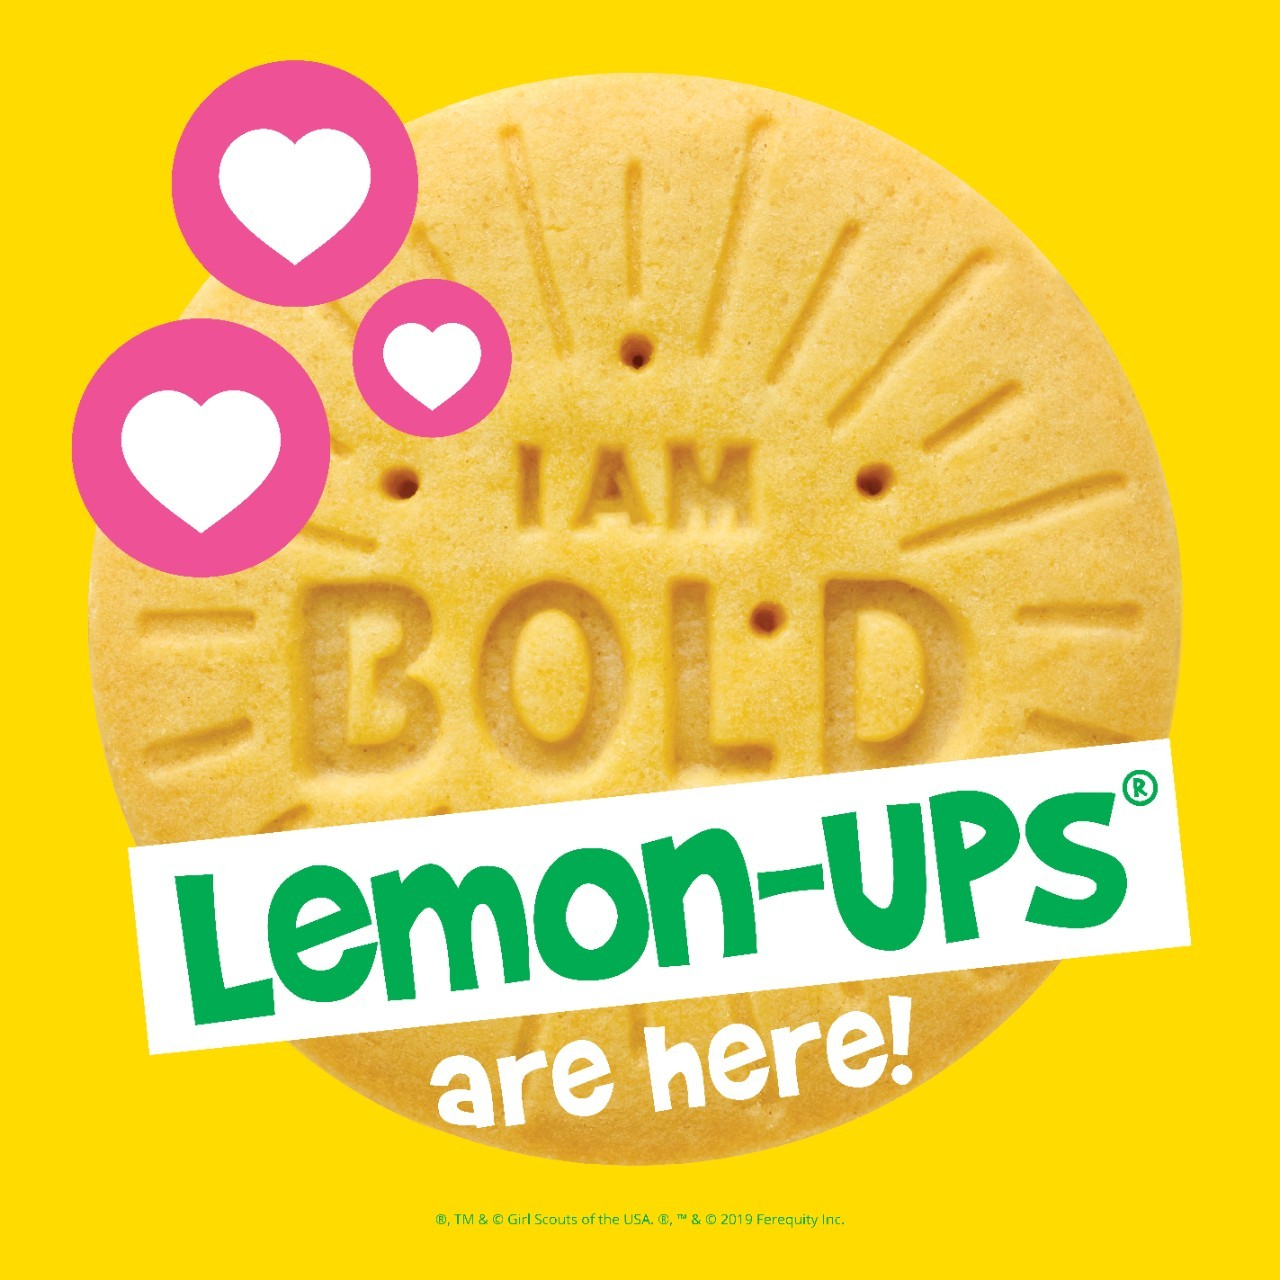 Lemon-ups are here-Bold